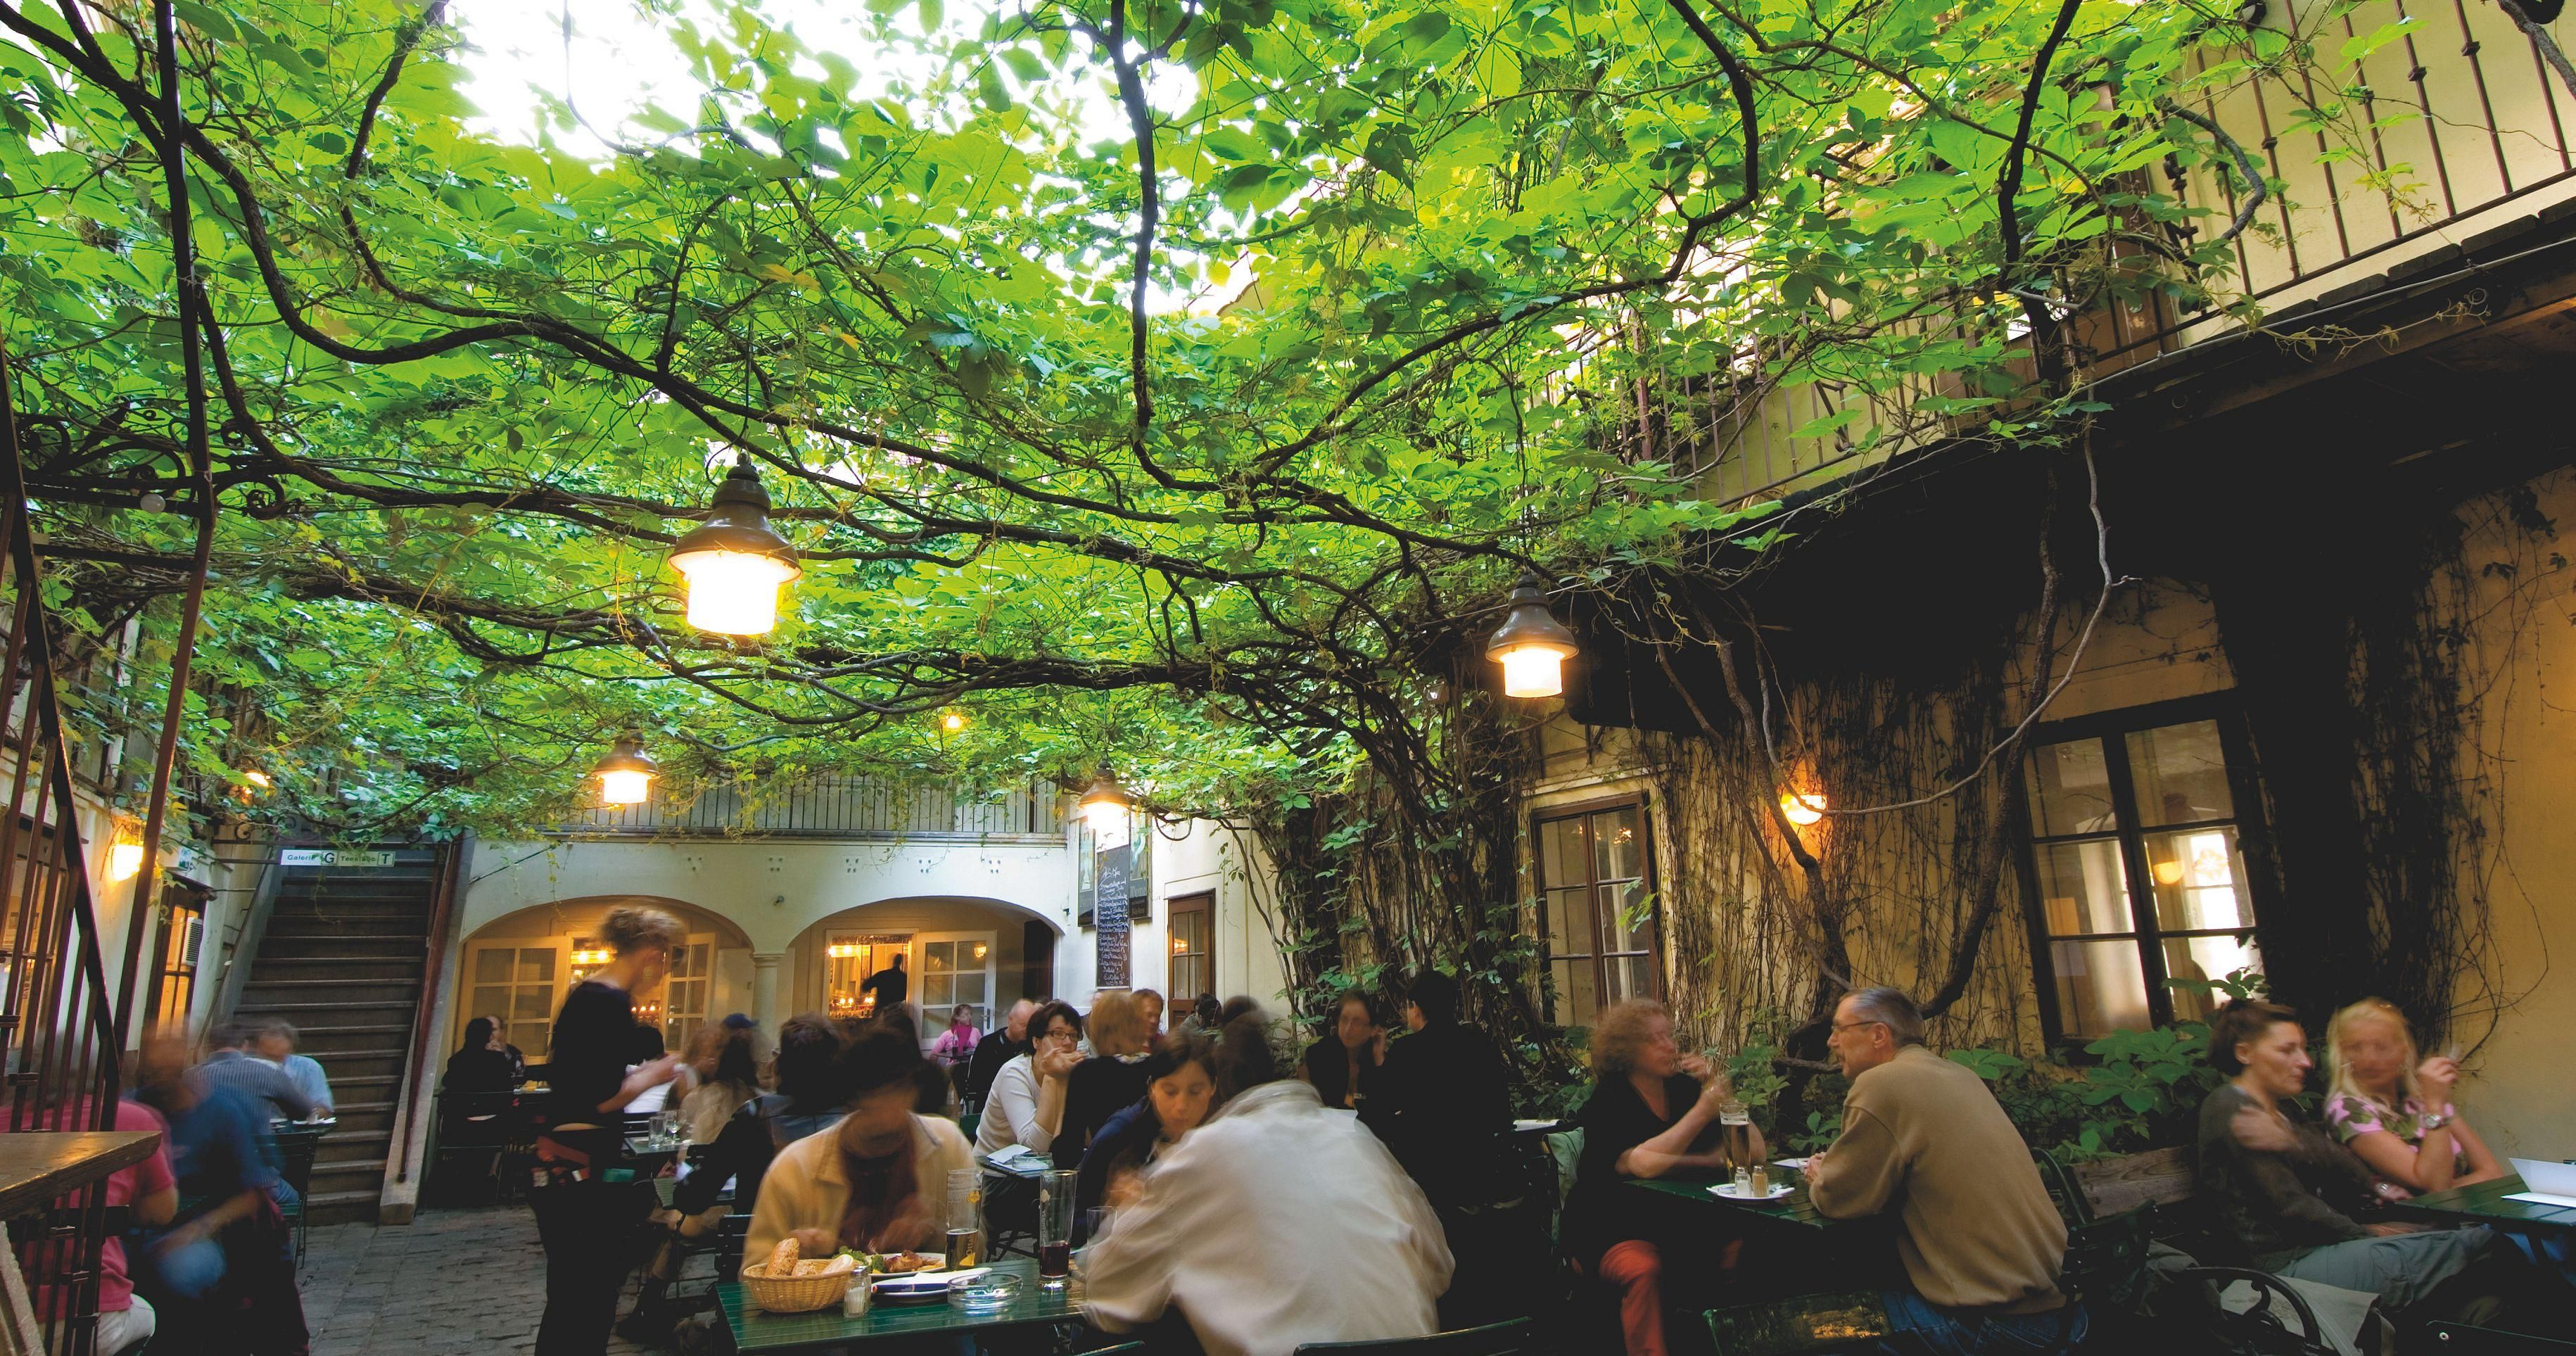 The Revitalized Biedermeier District Near The Museumsquartier Has Countless Restaurants Cafes And Bars With Idyllic Gardens Courtyard Cafe Vienna Courtyard